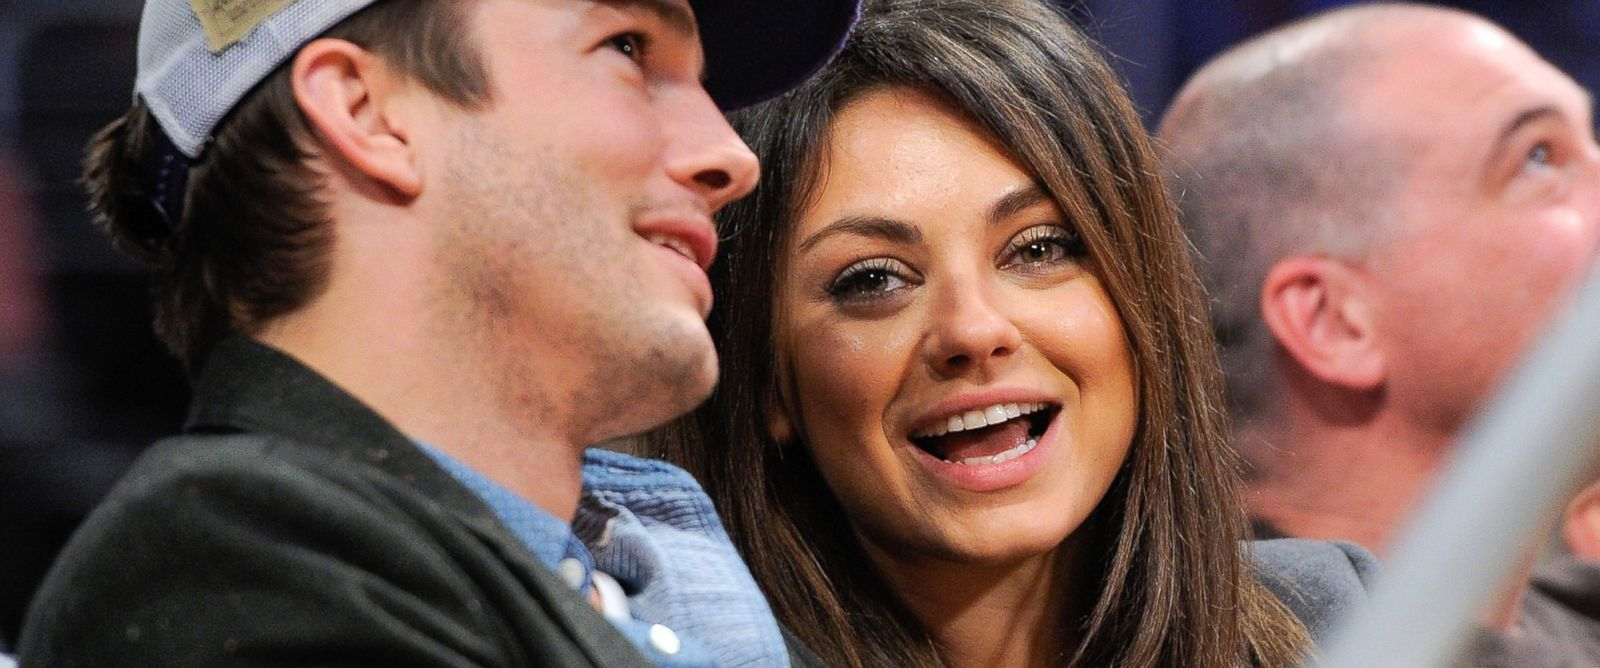 PHOTO: Ashton Kutcher and Mila Kunis attend a basketball game between the Utah Jazz and the Los Angeles Lakers at Staples Center, Jan. 3, 2014, in Los Angeles.